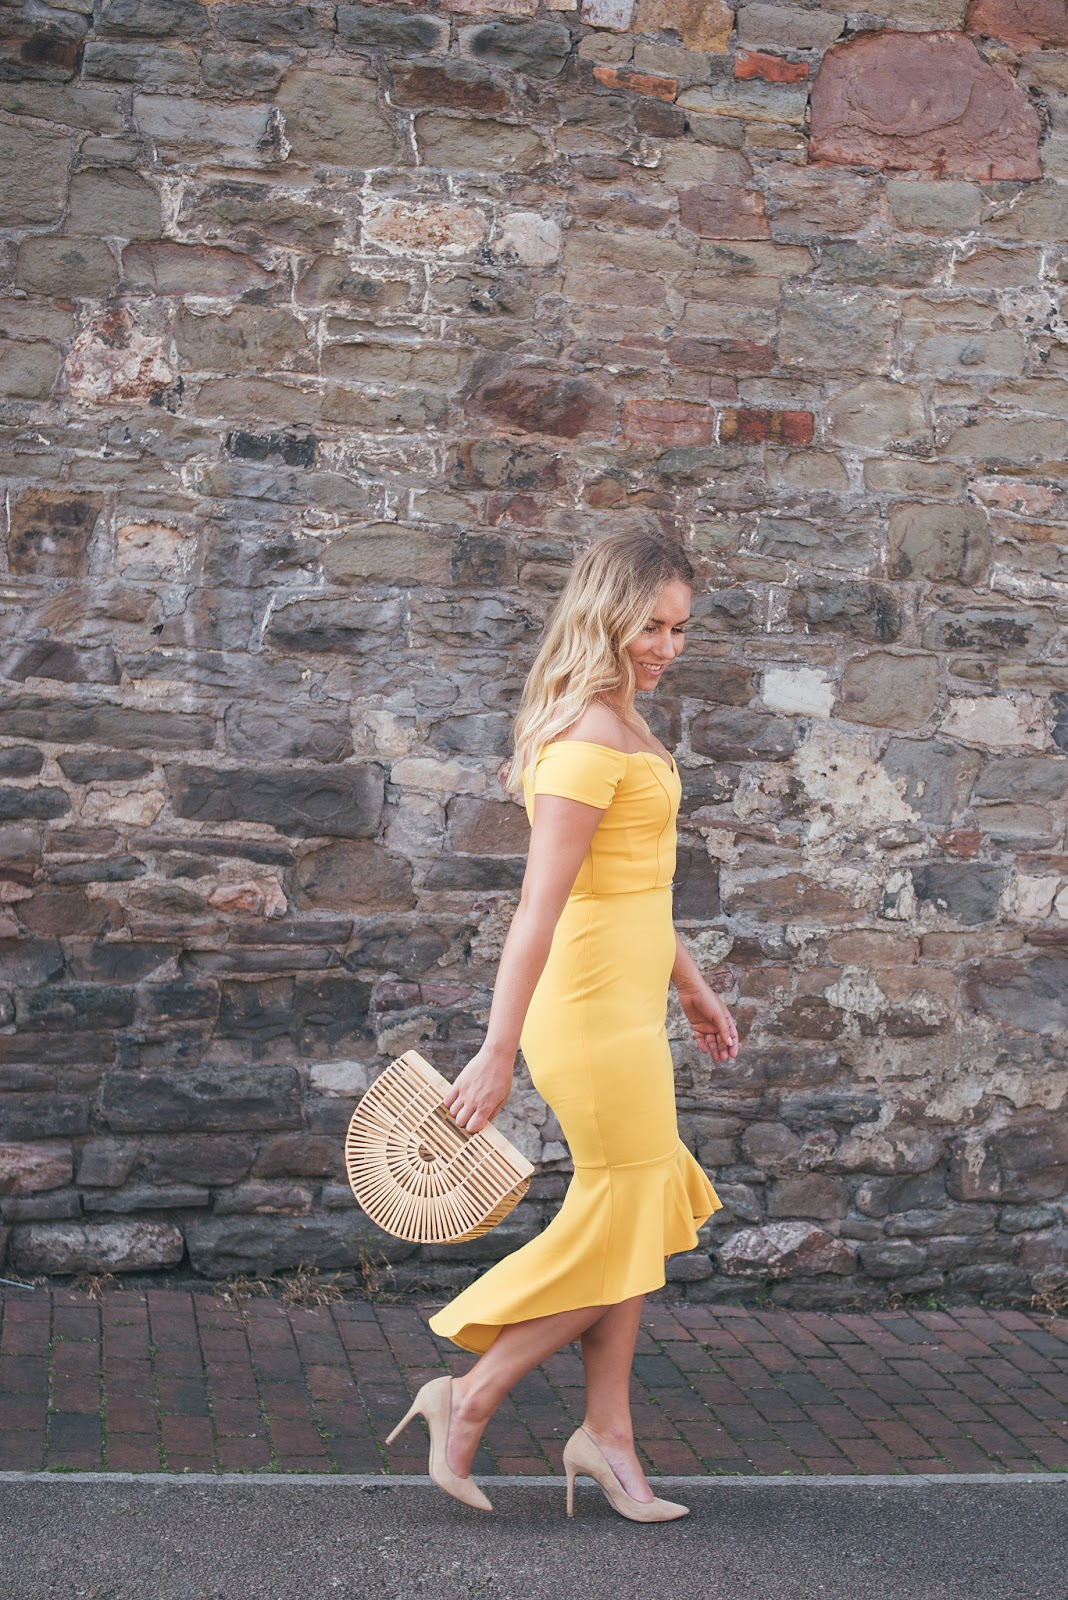 Rachel Emily Walking in Yellow John Zack Dress with Fishtail Movement and Bamboo Bag